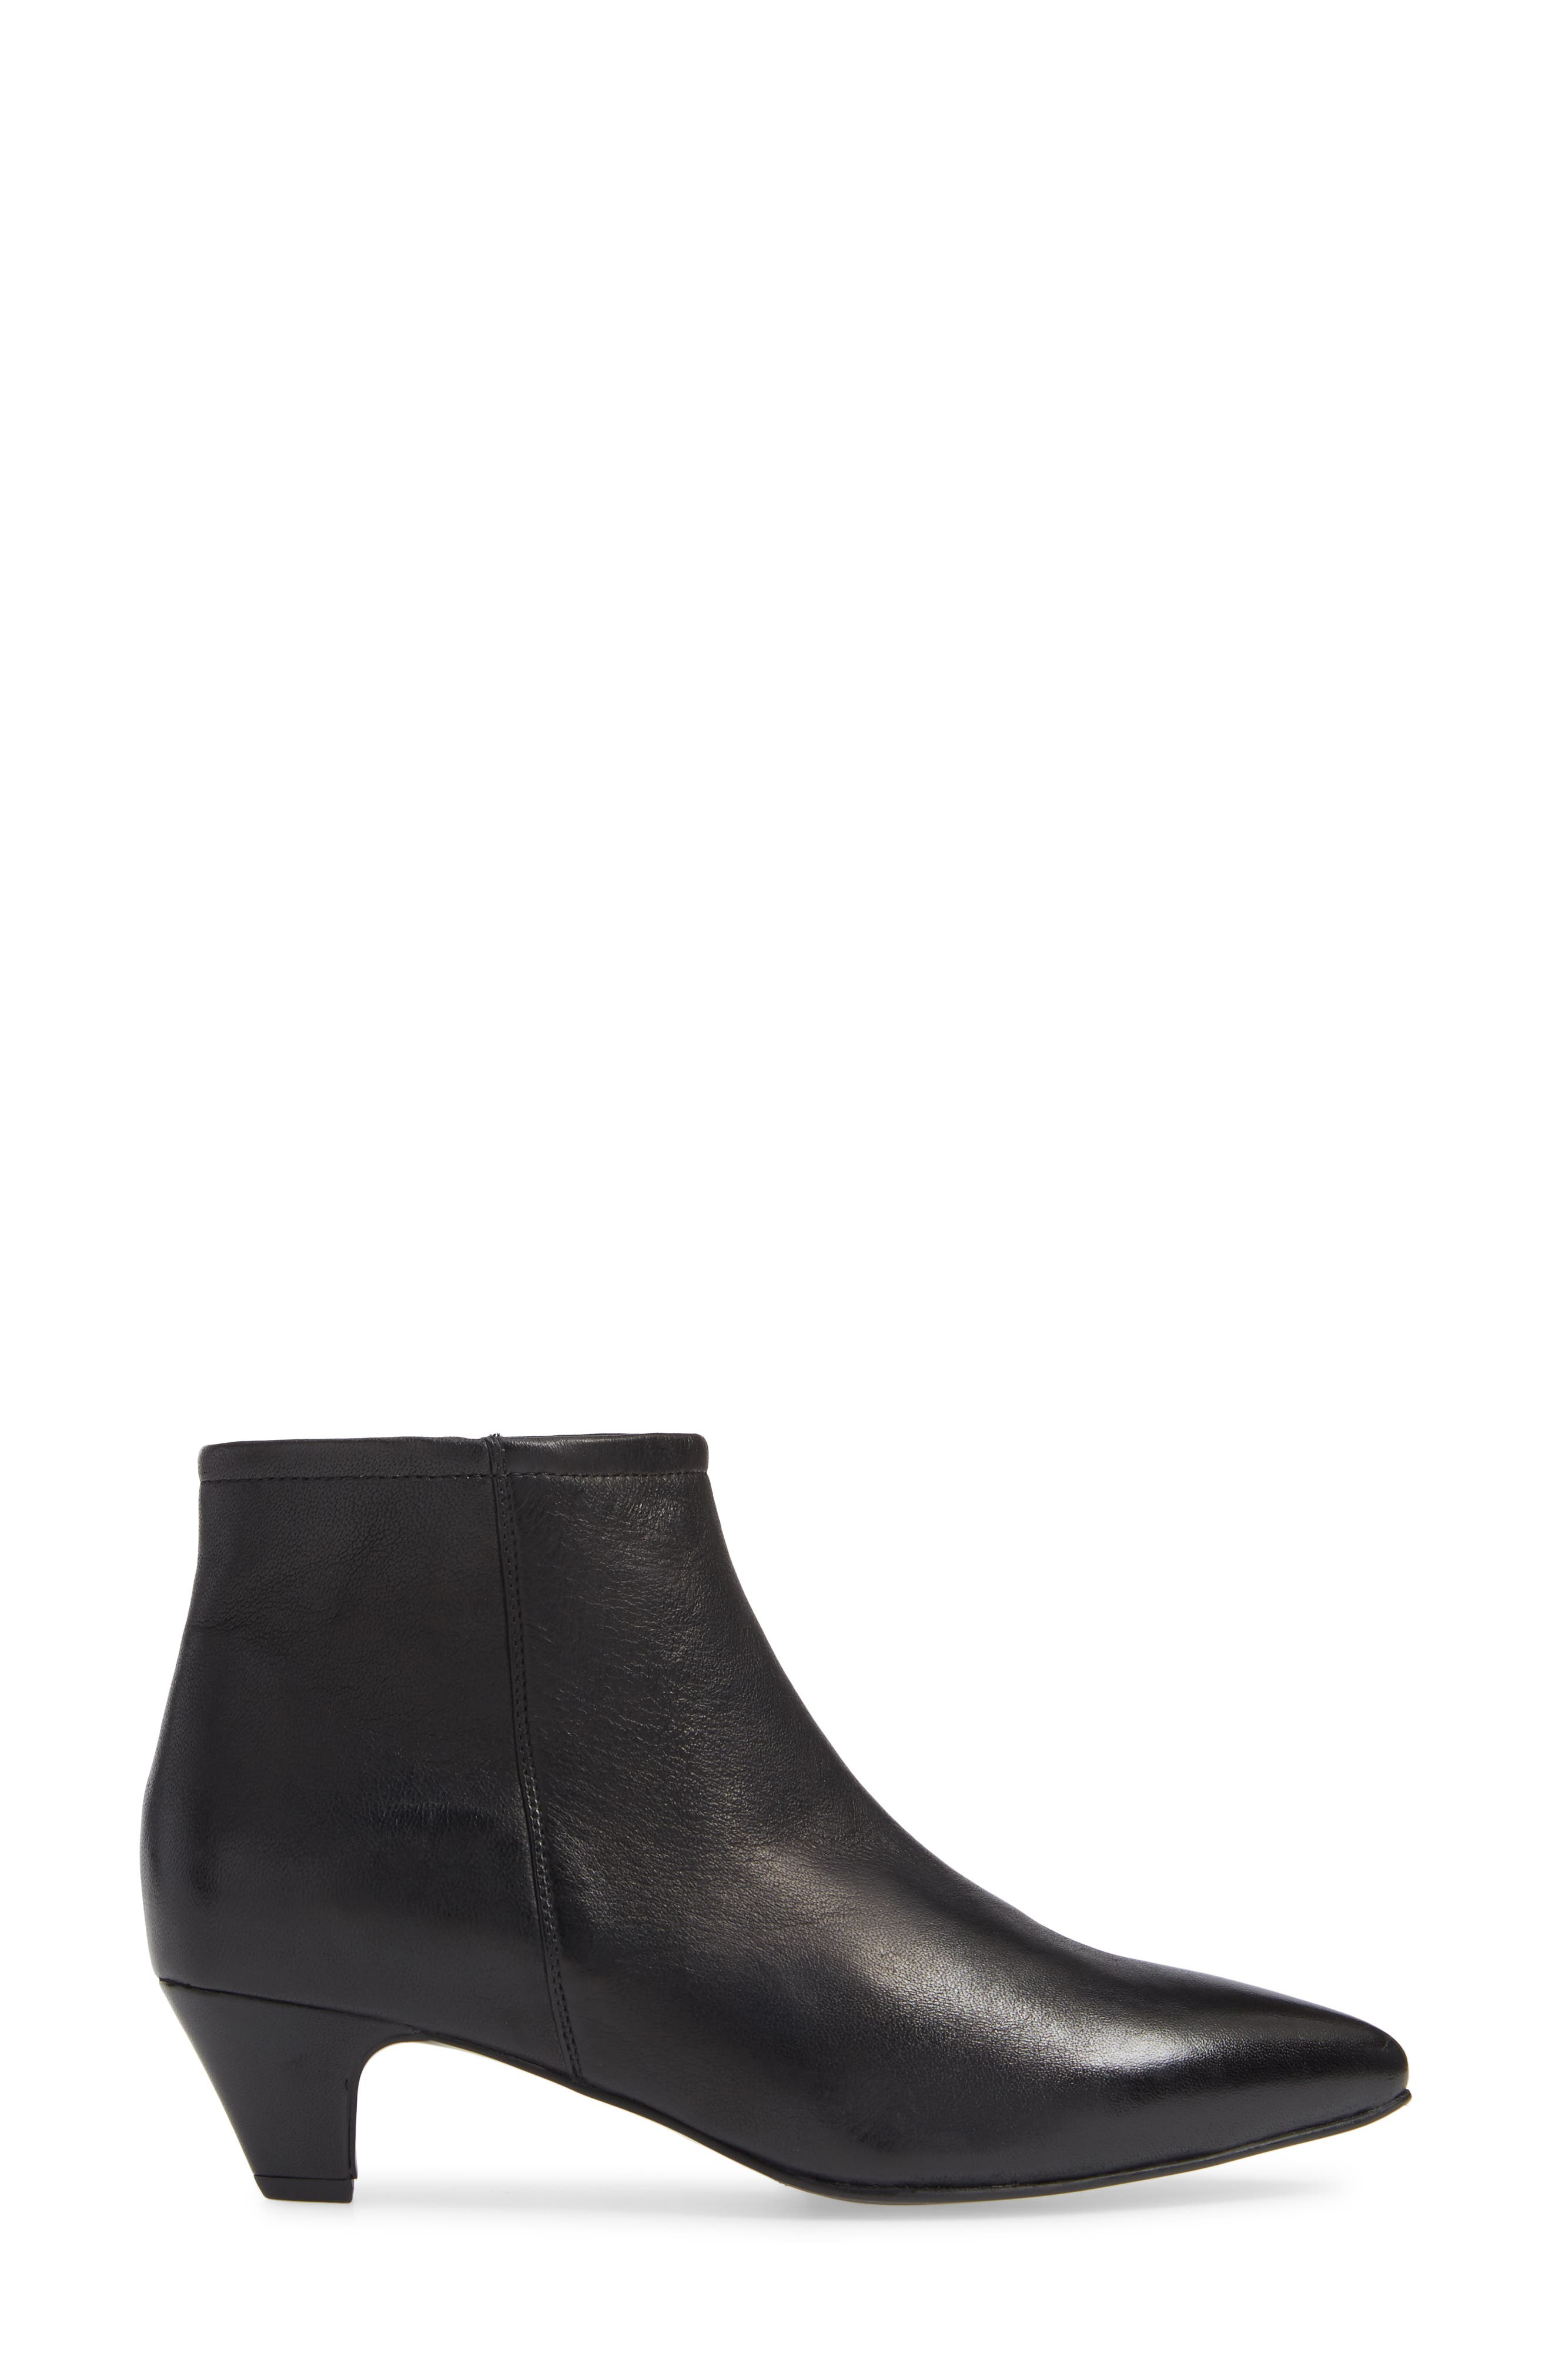 SEYCHELLES,                             Biome Bootie,                             Alternate thumbnail 3, color,                             BLACK LEATHER